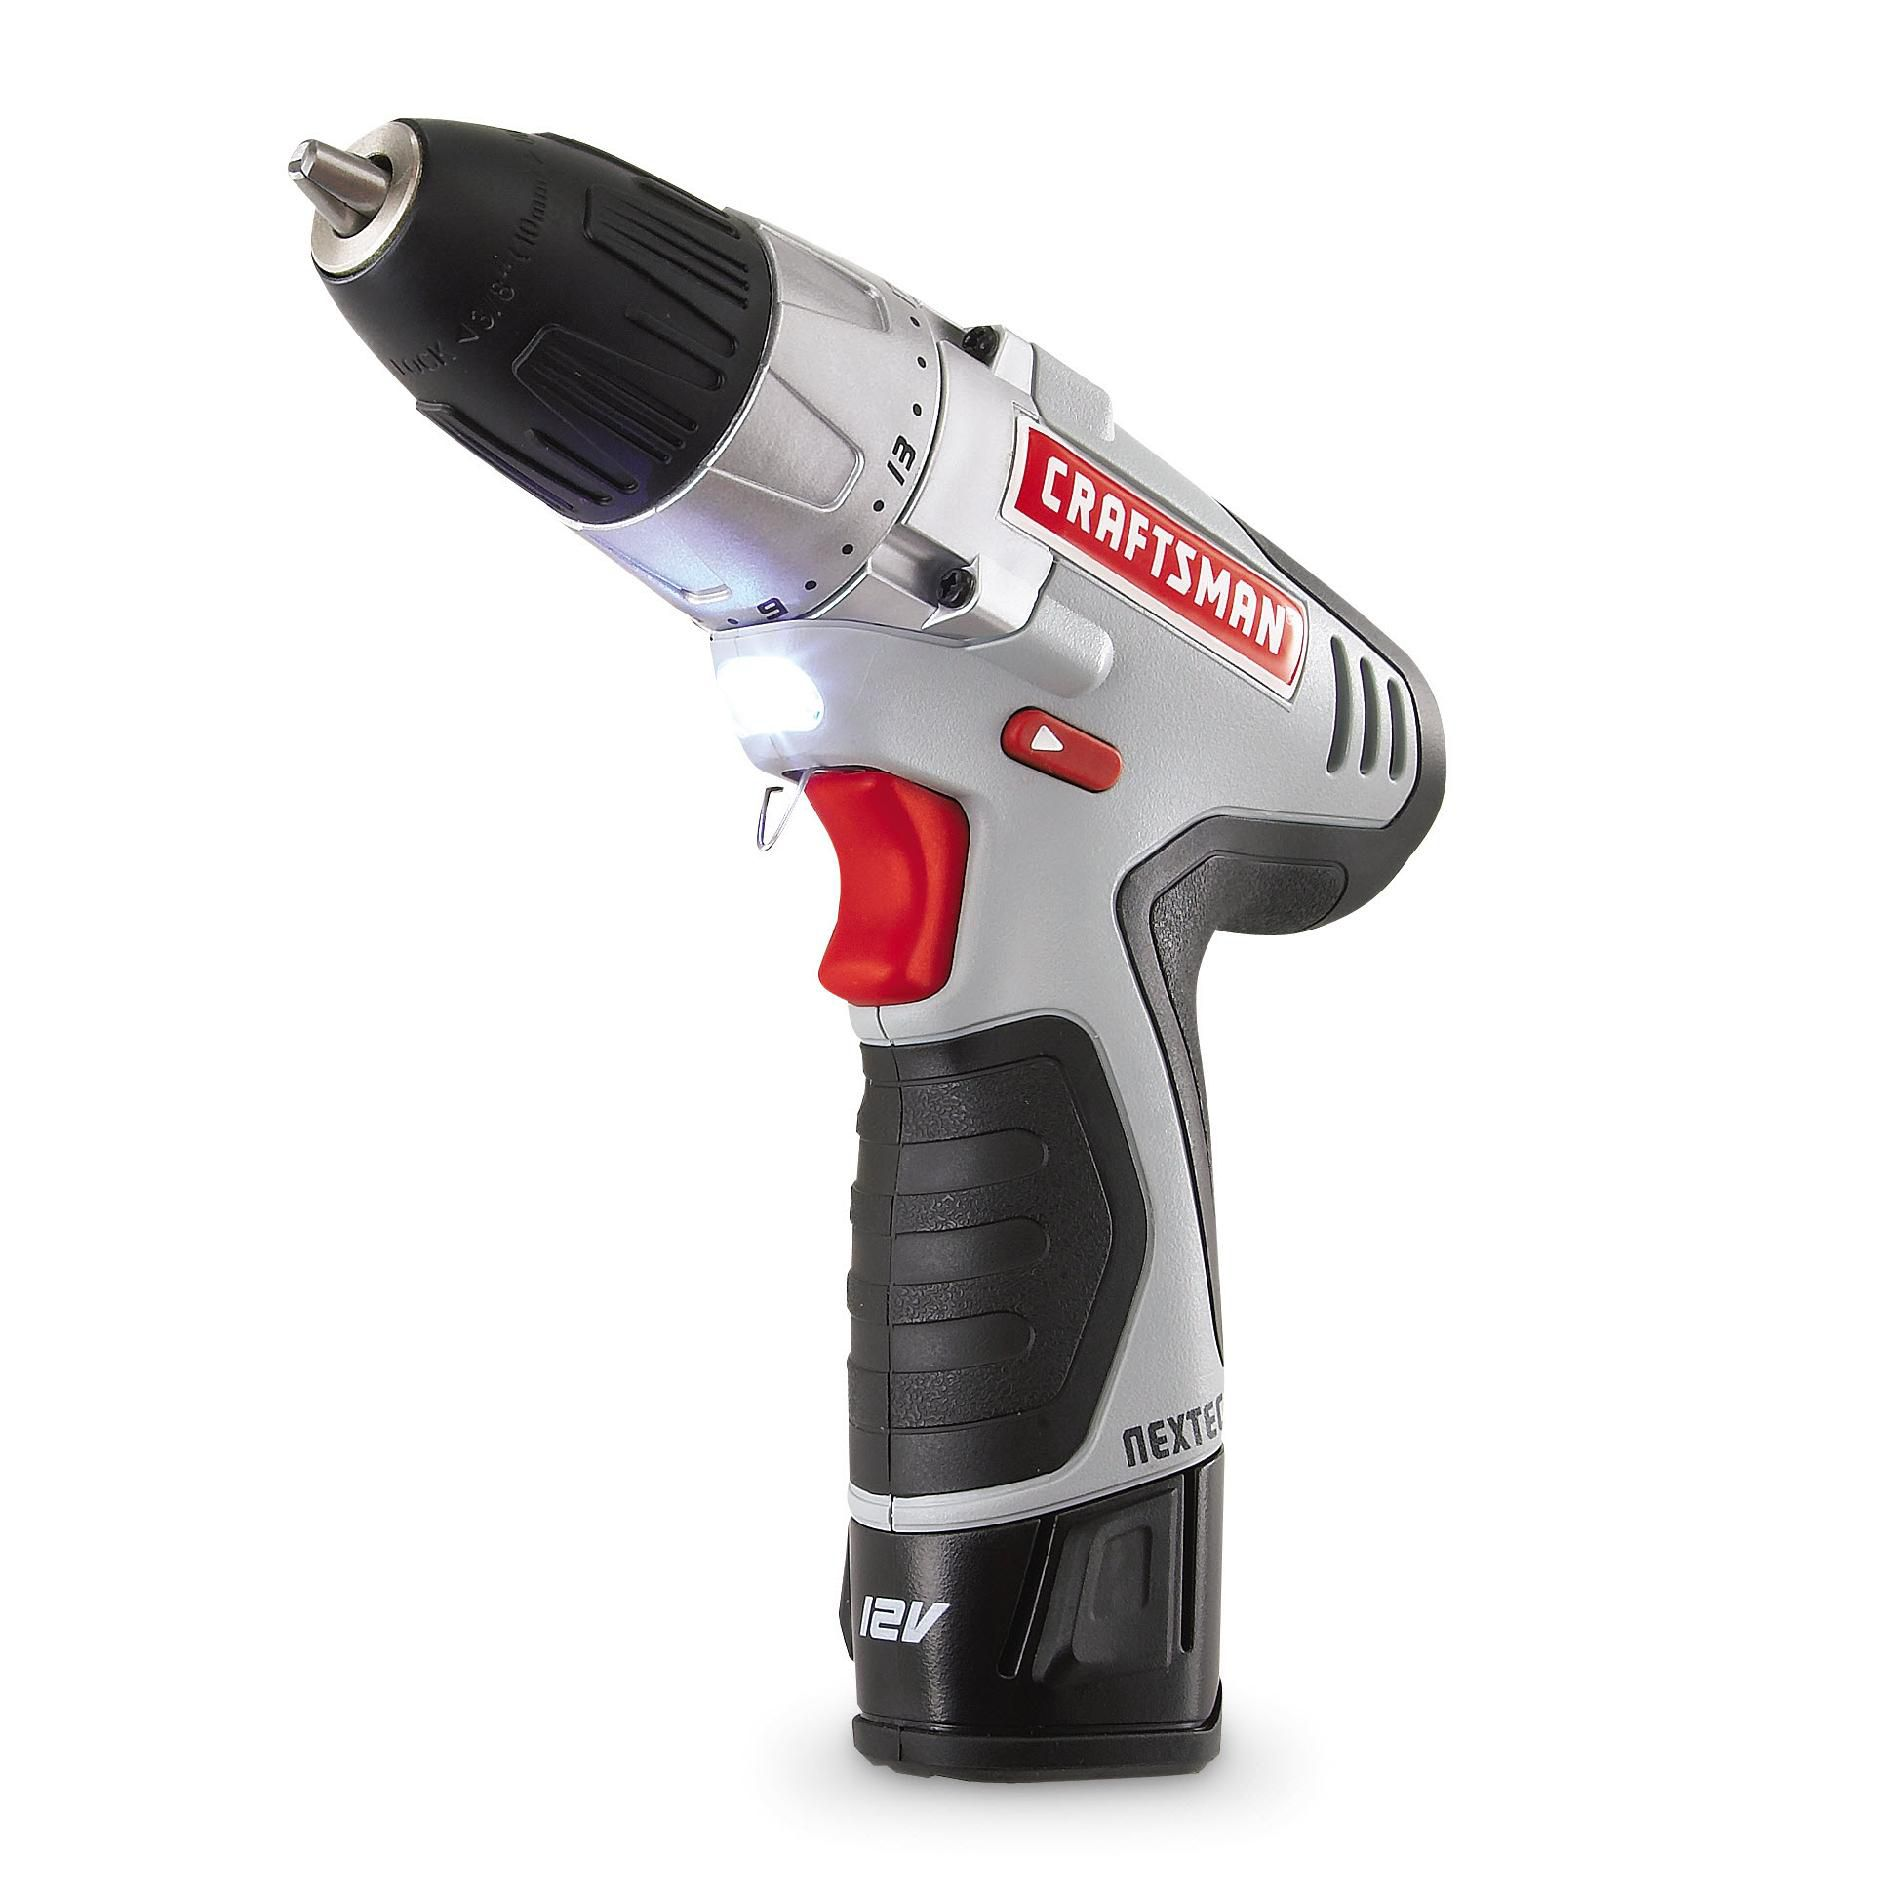 Craftsman 17586 NEXTEC 12.0V Lithium-Ion Drill/Driver